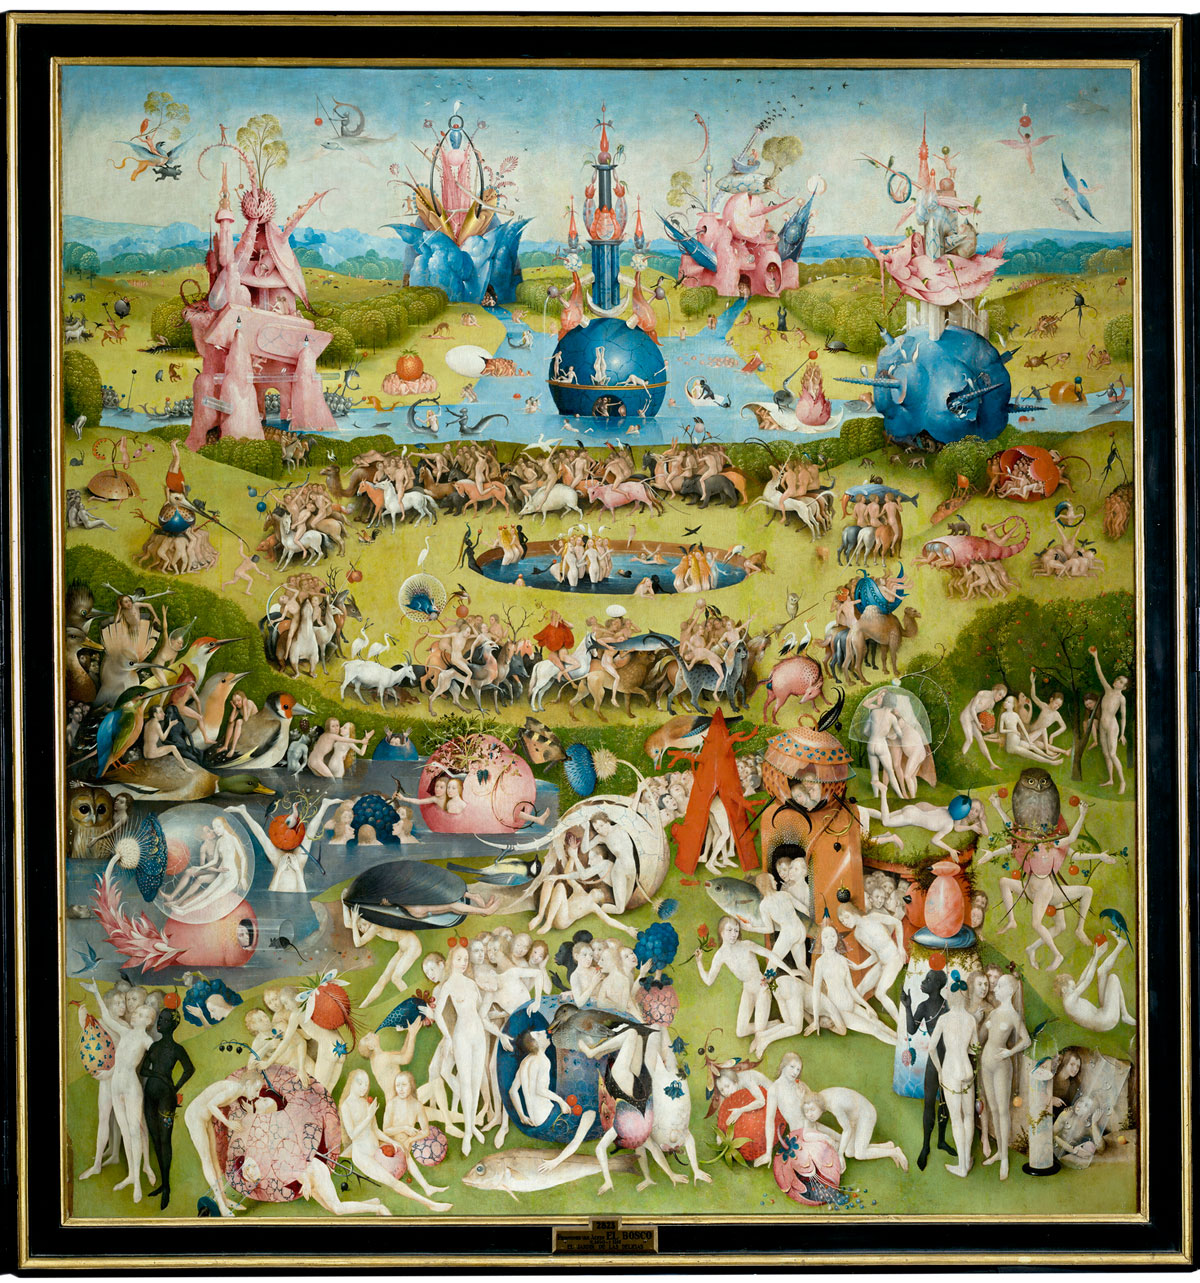 hieronymus bosch   the garden of earthly delights 1 Paradise: A Modern Day Interpretation of the Garden of Earthly Delights